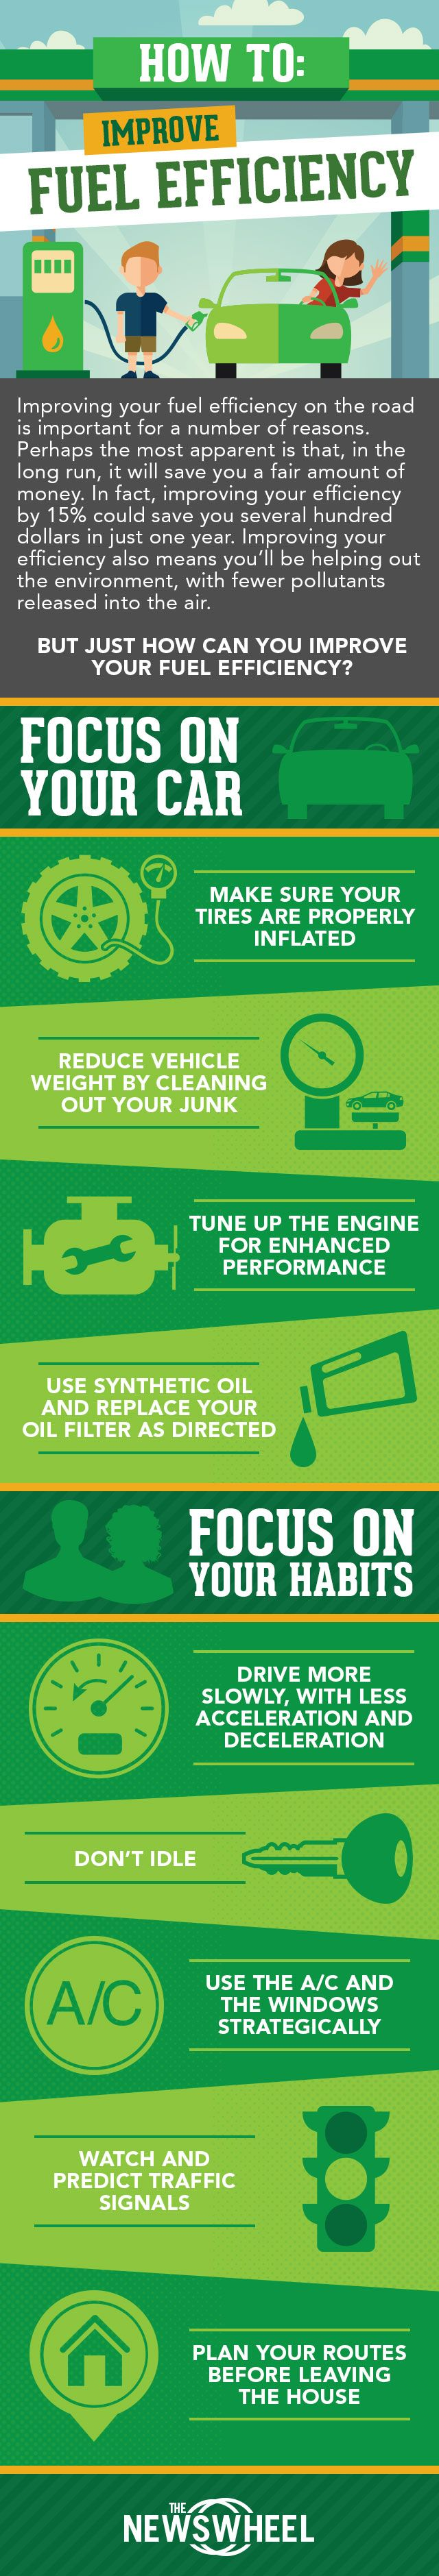 How to improve your fuel efficiency fuel efficiency infographic